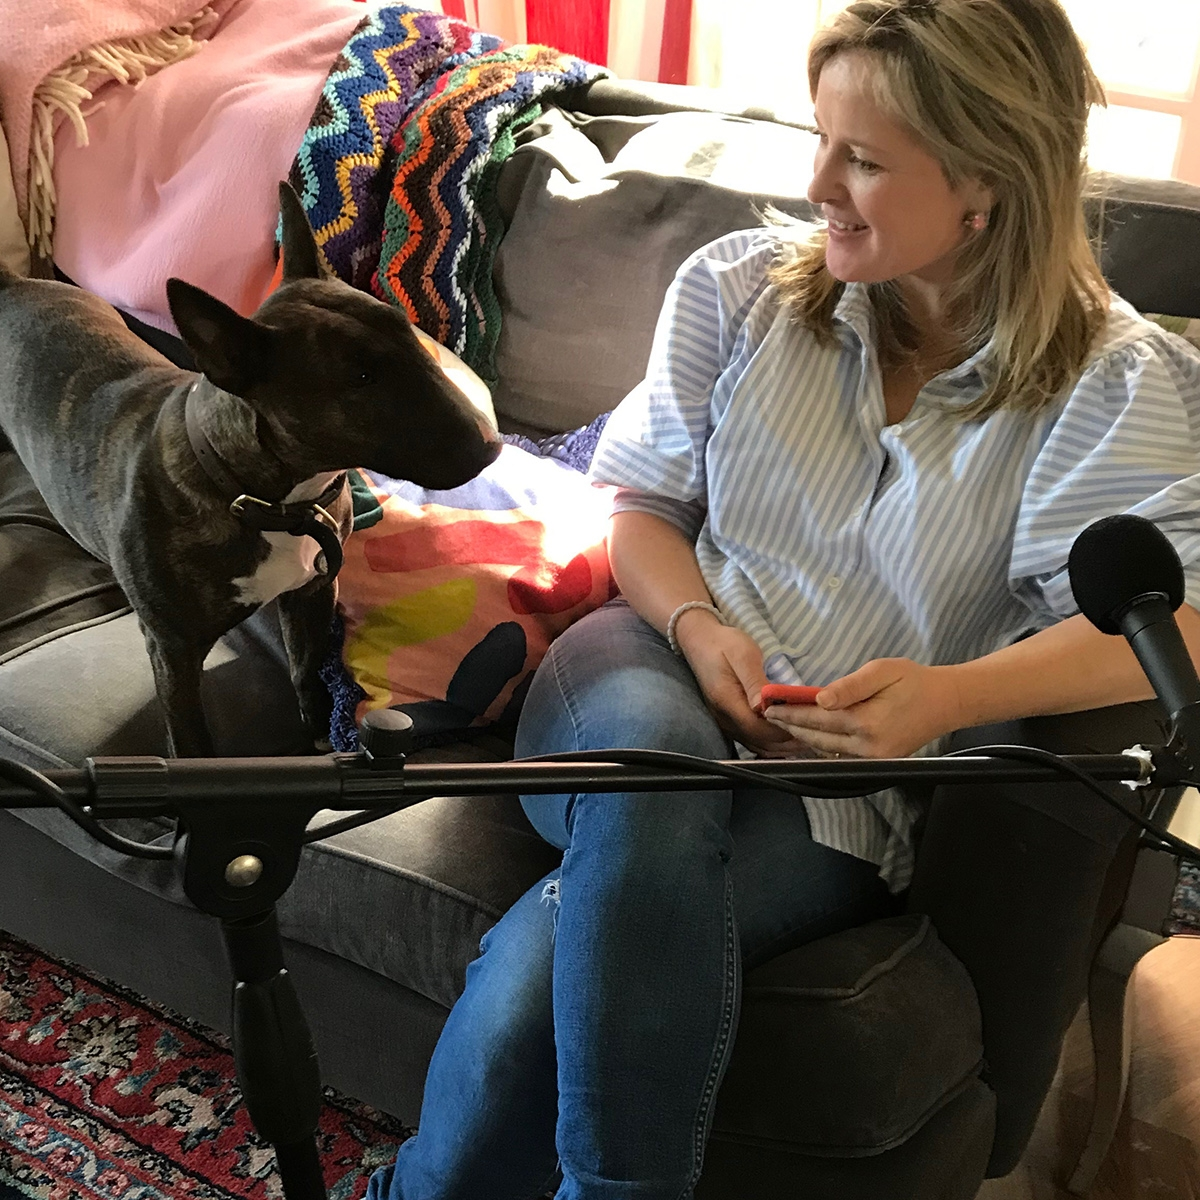 Sophie Robinson at home with her dog Lucy getting in on the action while recording the Great Indoors Podcast. #sophierobinson #podcast #thegreatindoors